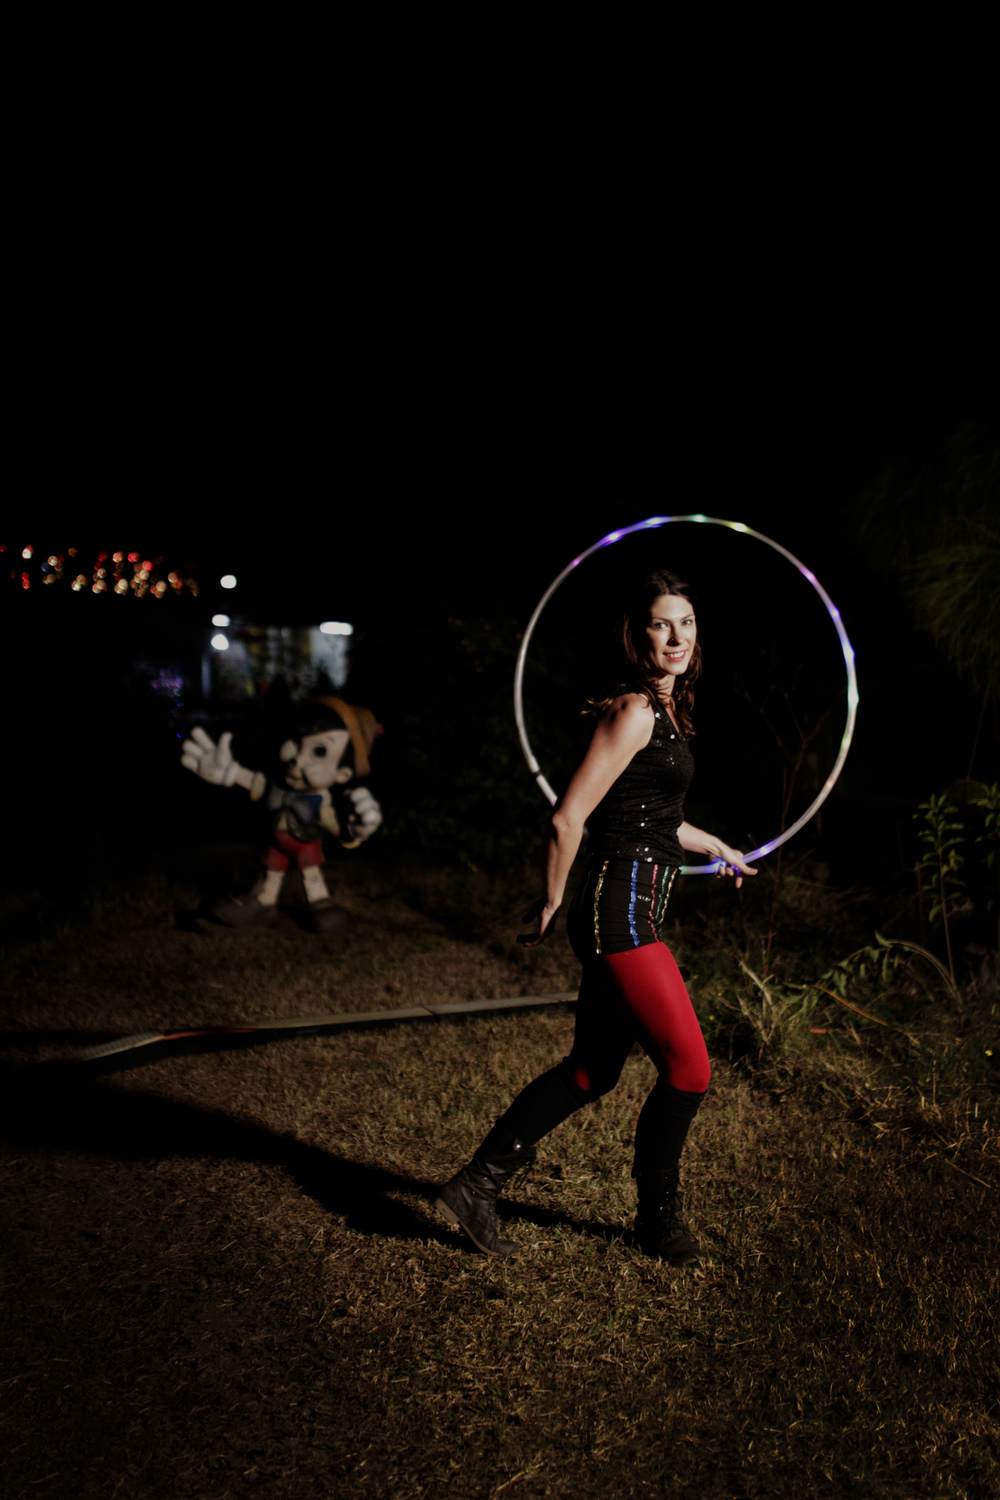 Hoola hooping with an abandoned Pinocchio looking on in amazement.